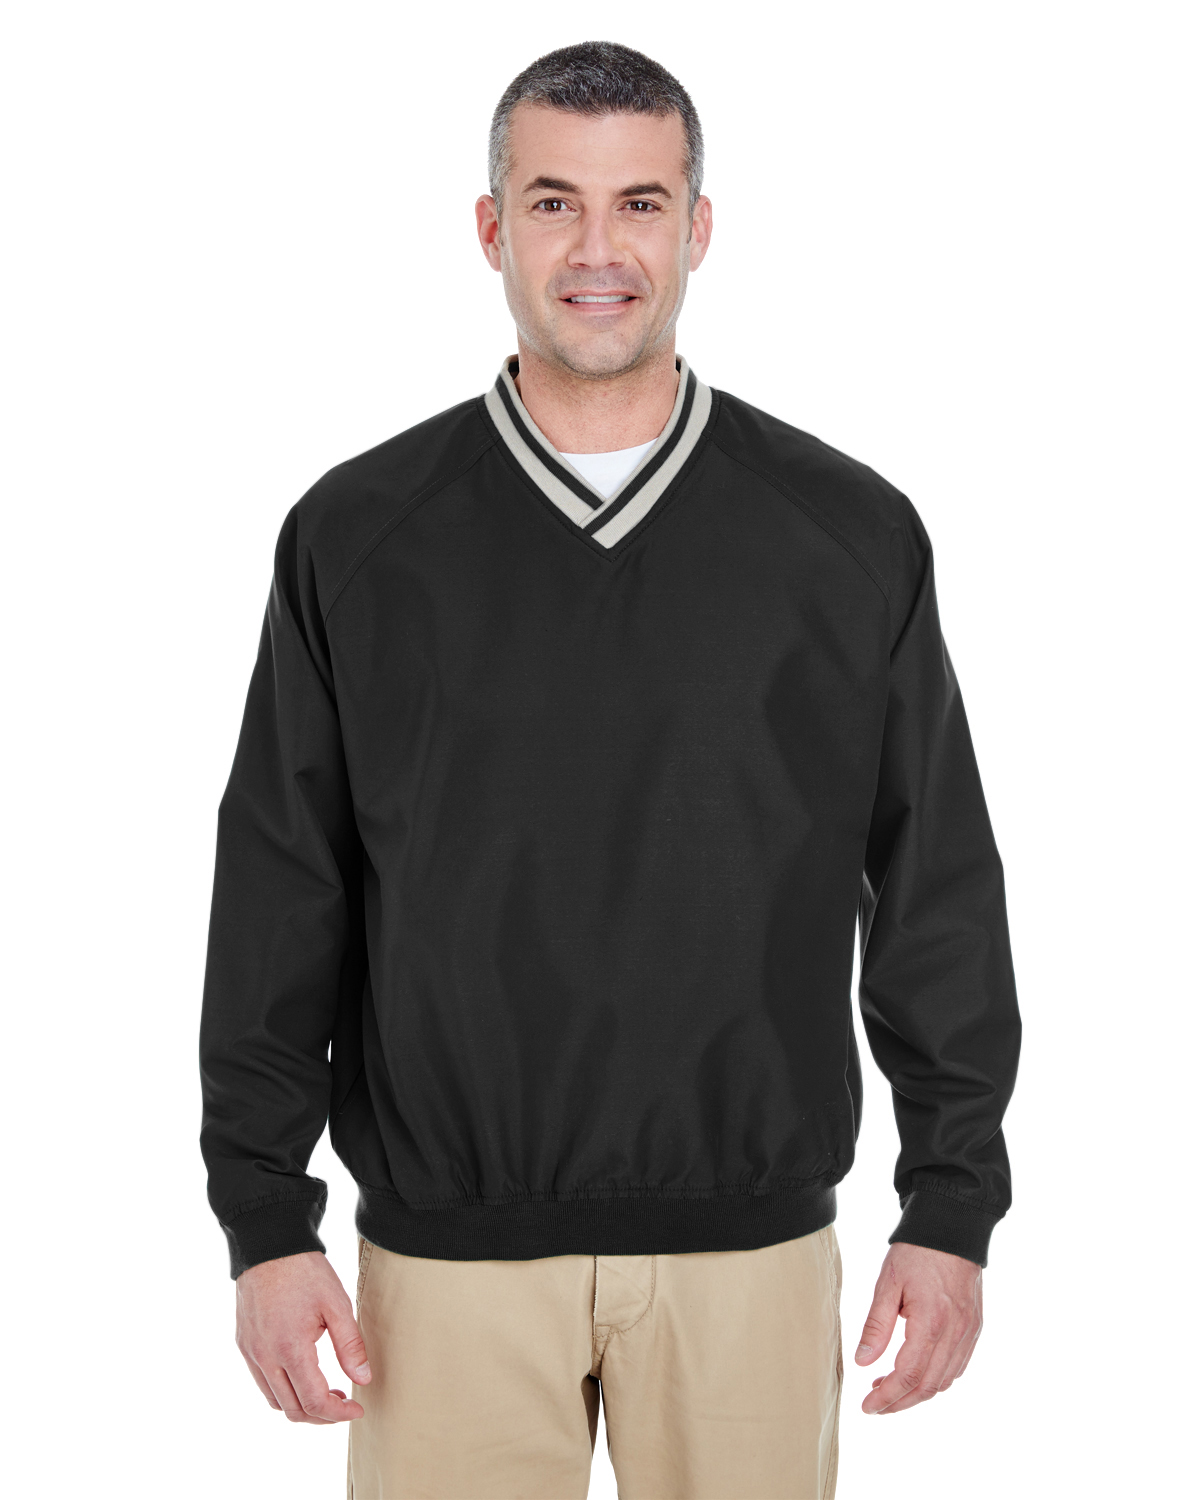 UltraClub 8926-Adult Long-Sleeve Microfiber Cross-Over V-Neck Windshirt